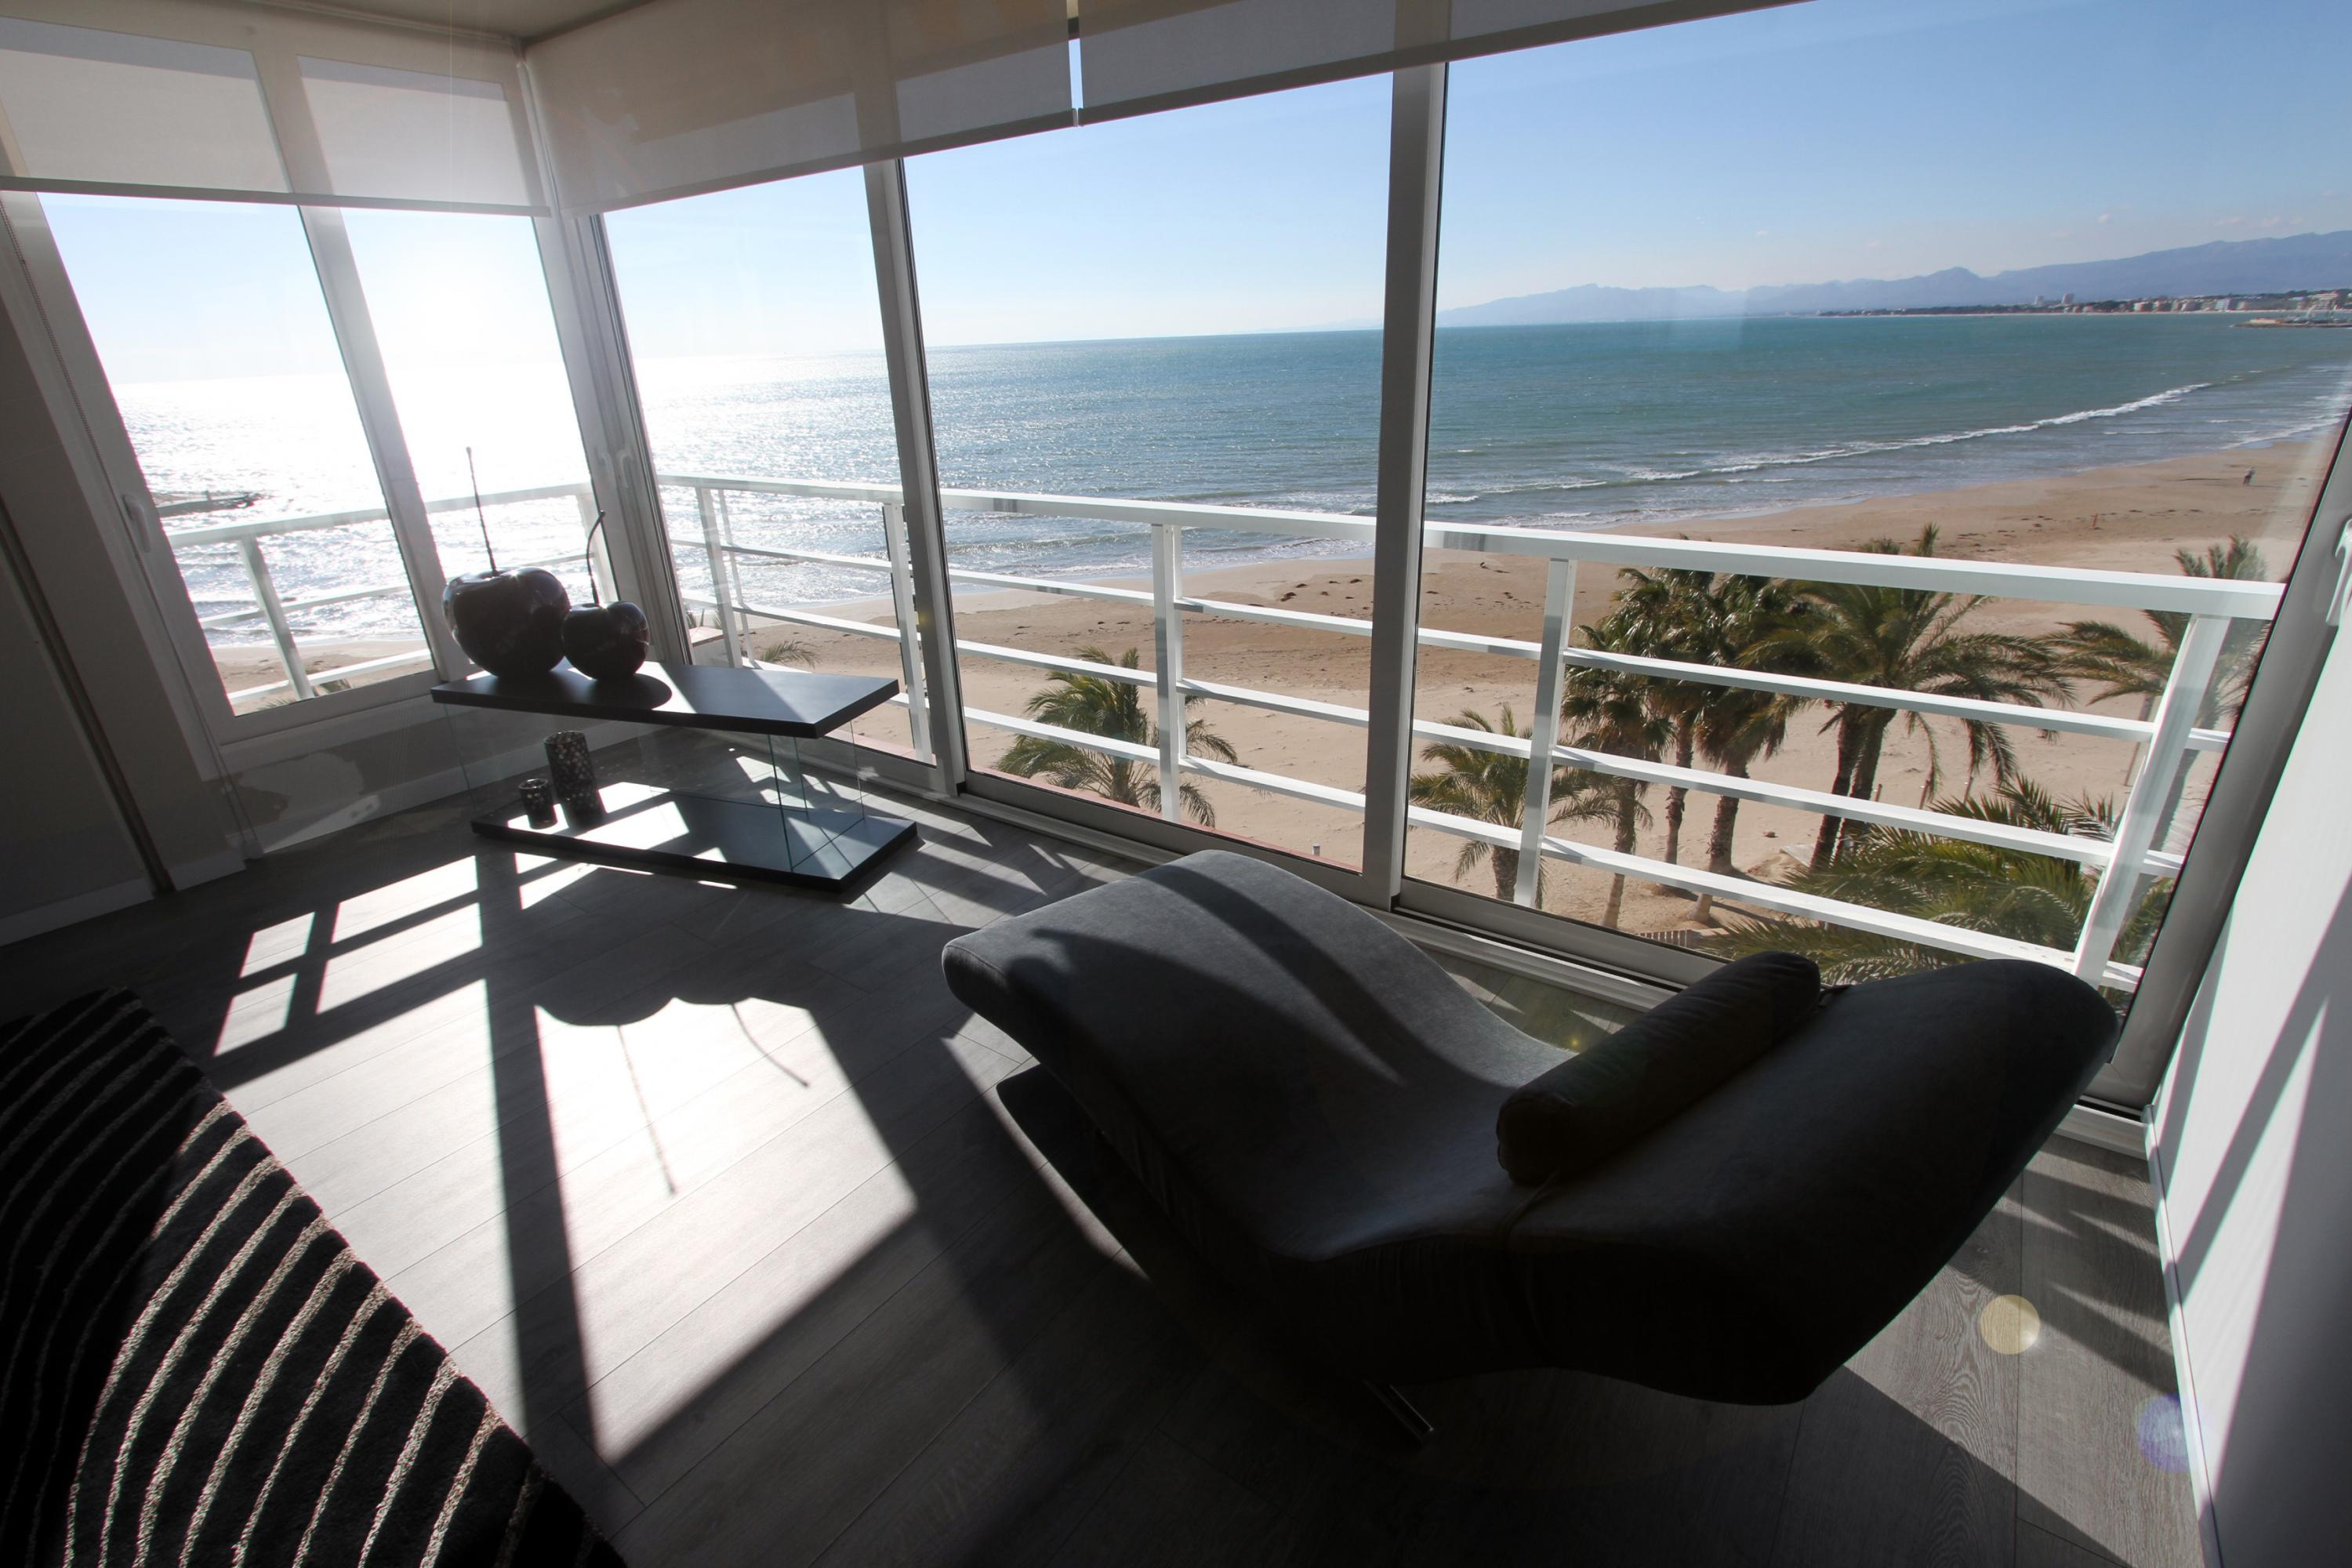 CB195 CB195 RUBENS LUXURY MAR Apartamento playa SALOU